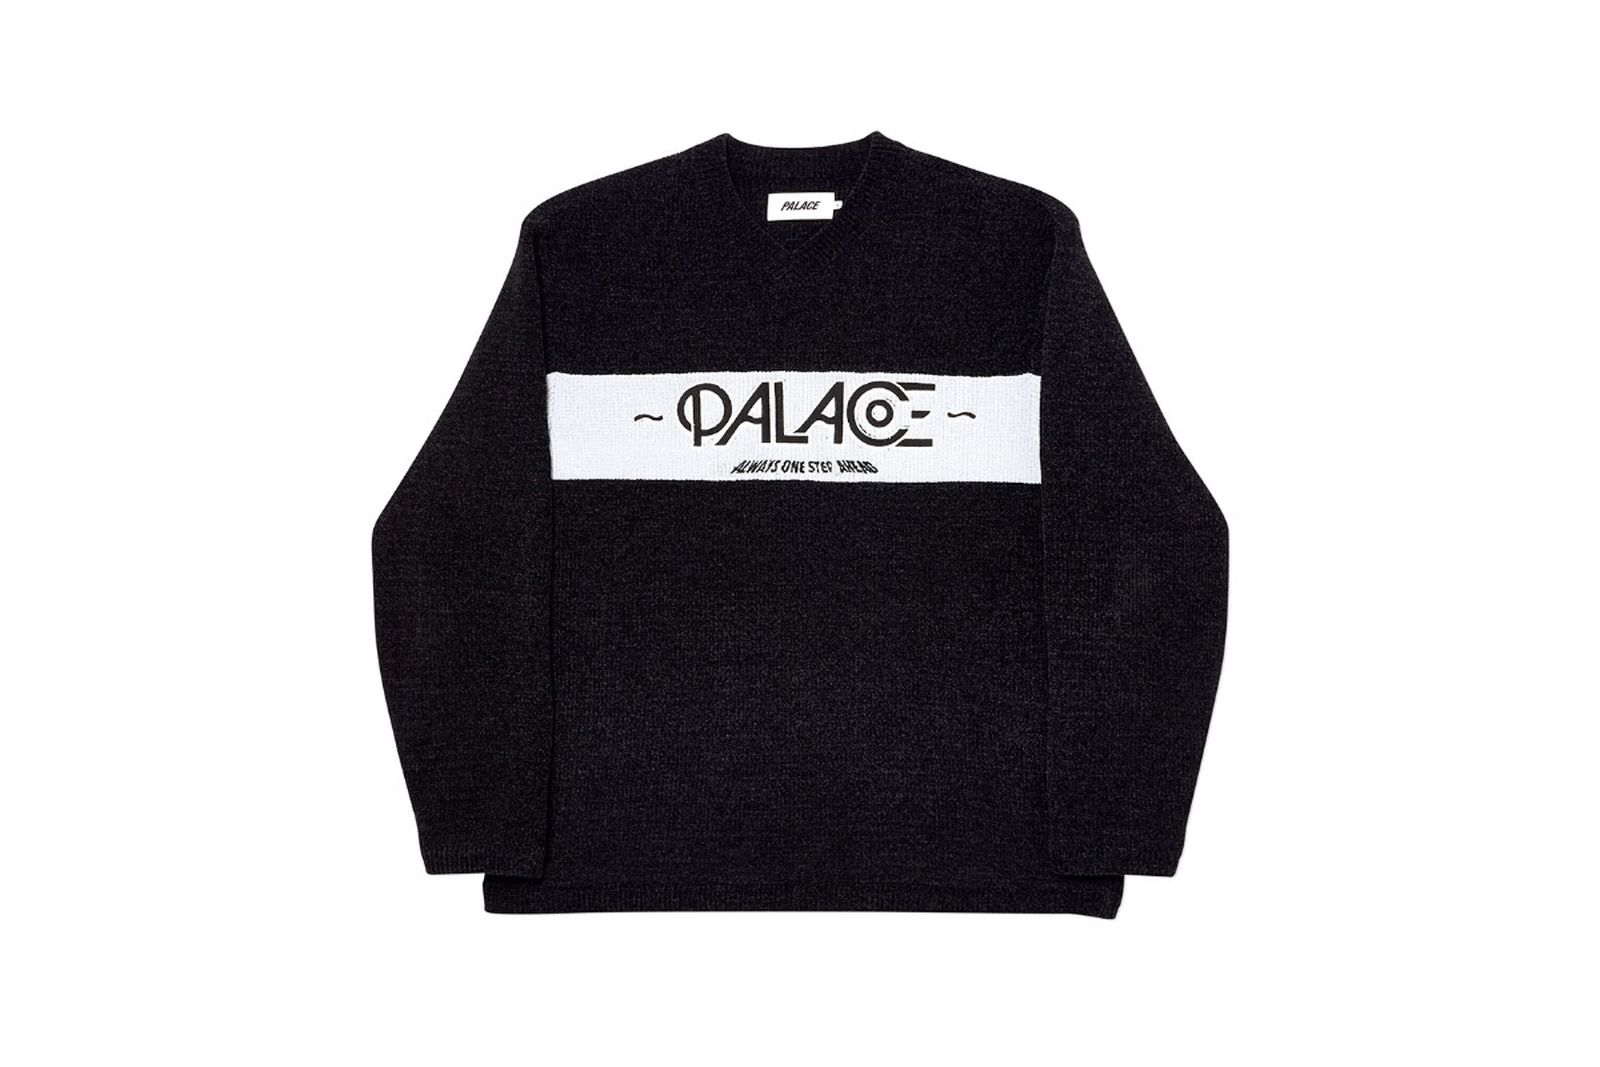 Palace 2019 Autumn knit obsission black front fw19